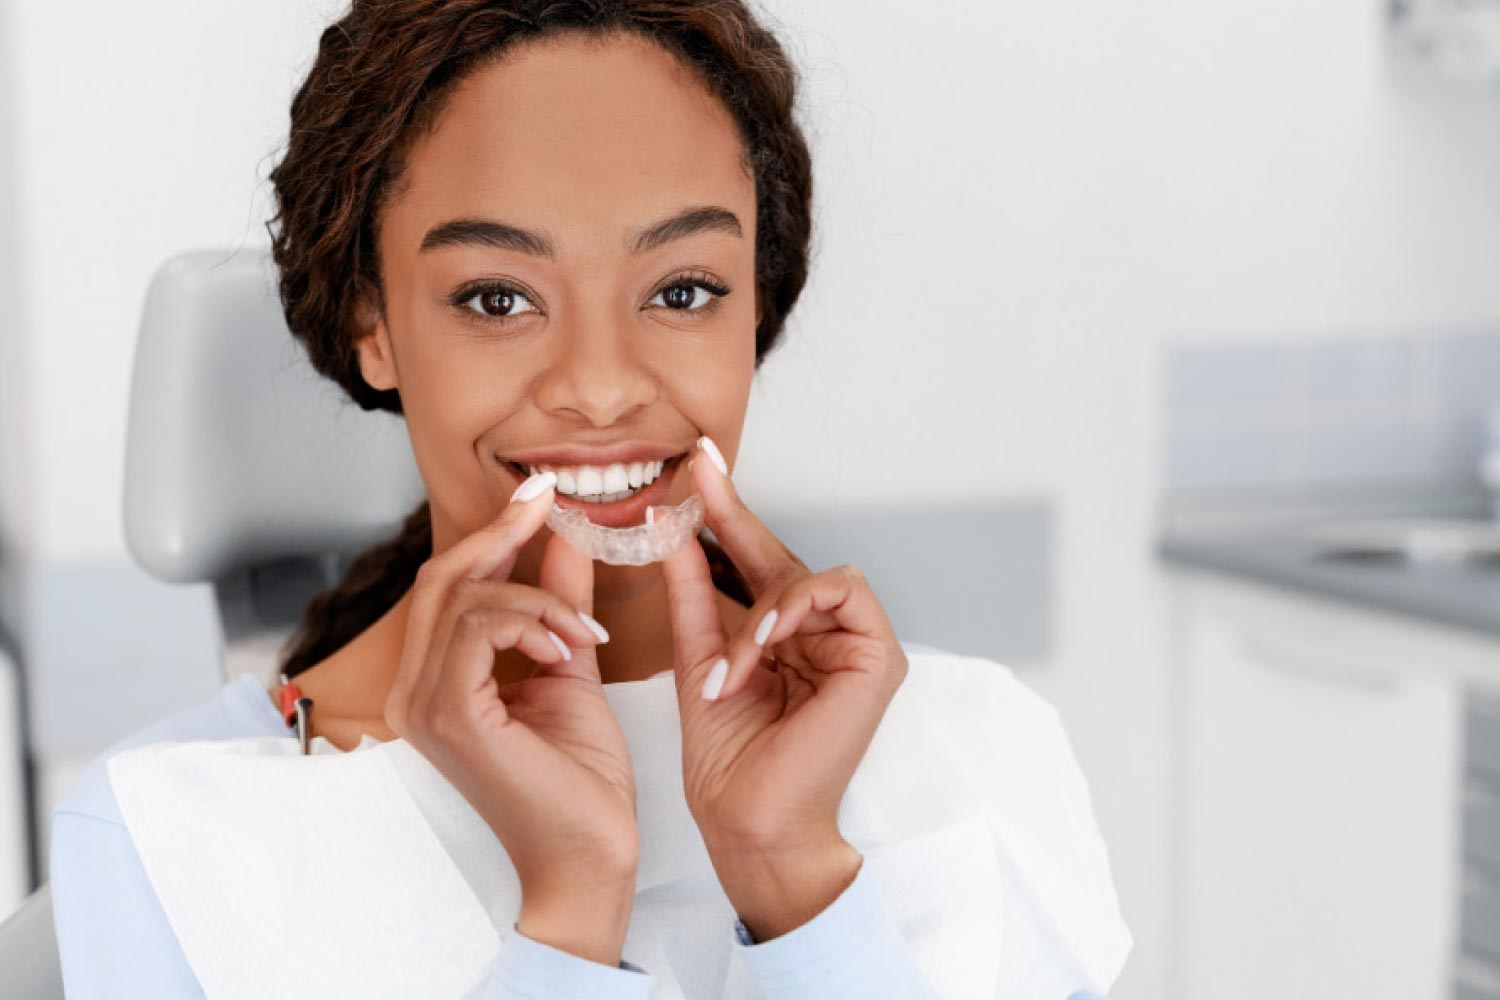 Pretty brown eyed girl holding a clear aligner in front of her smile.